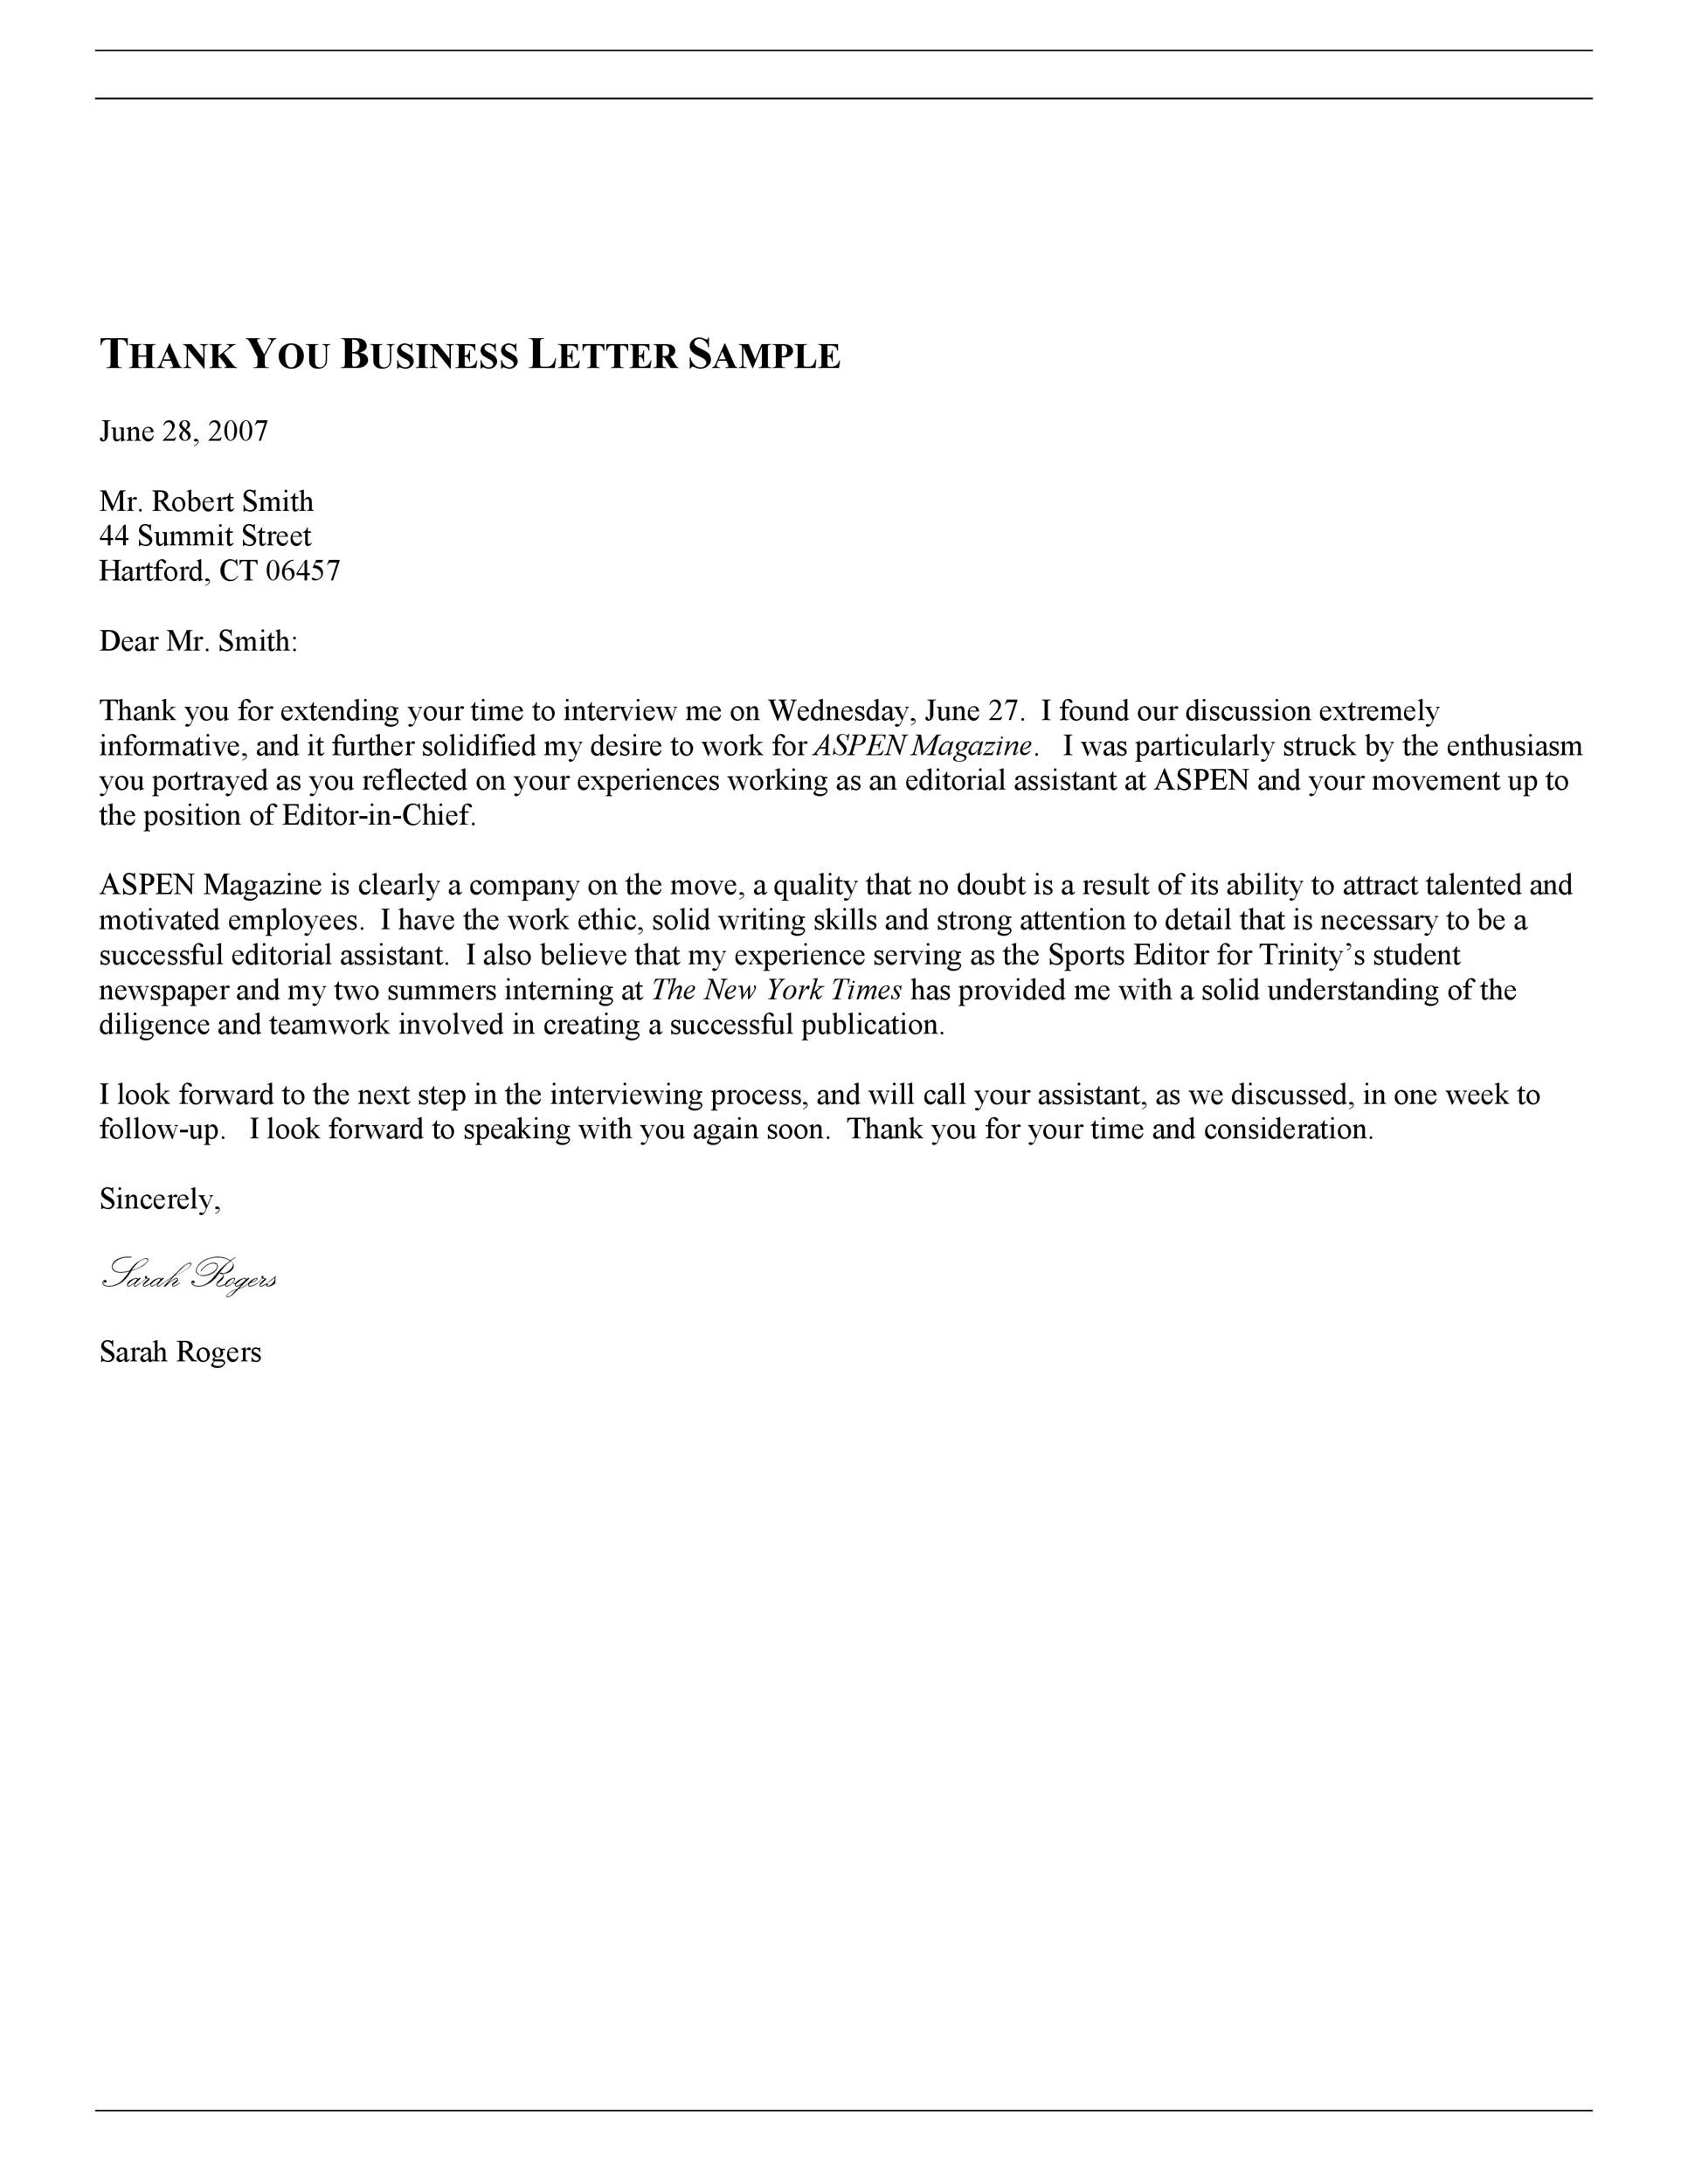 30 Thank you Letter Templates ScholarshipDonationBoss – Scholarship Thank You Letters